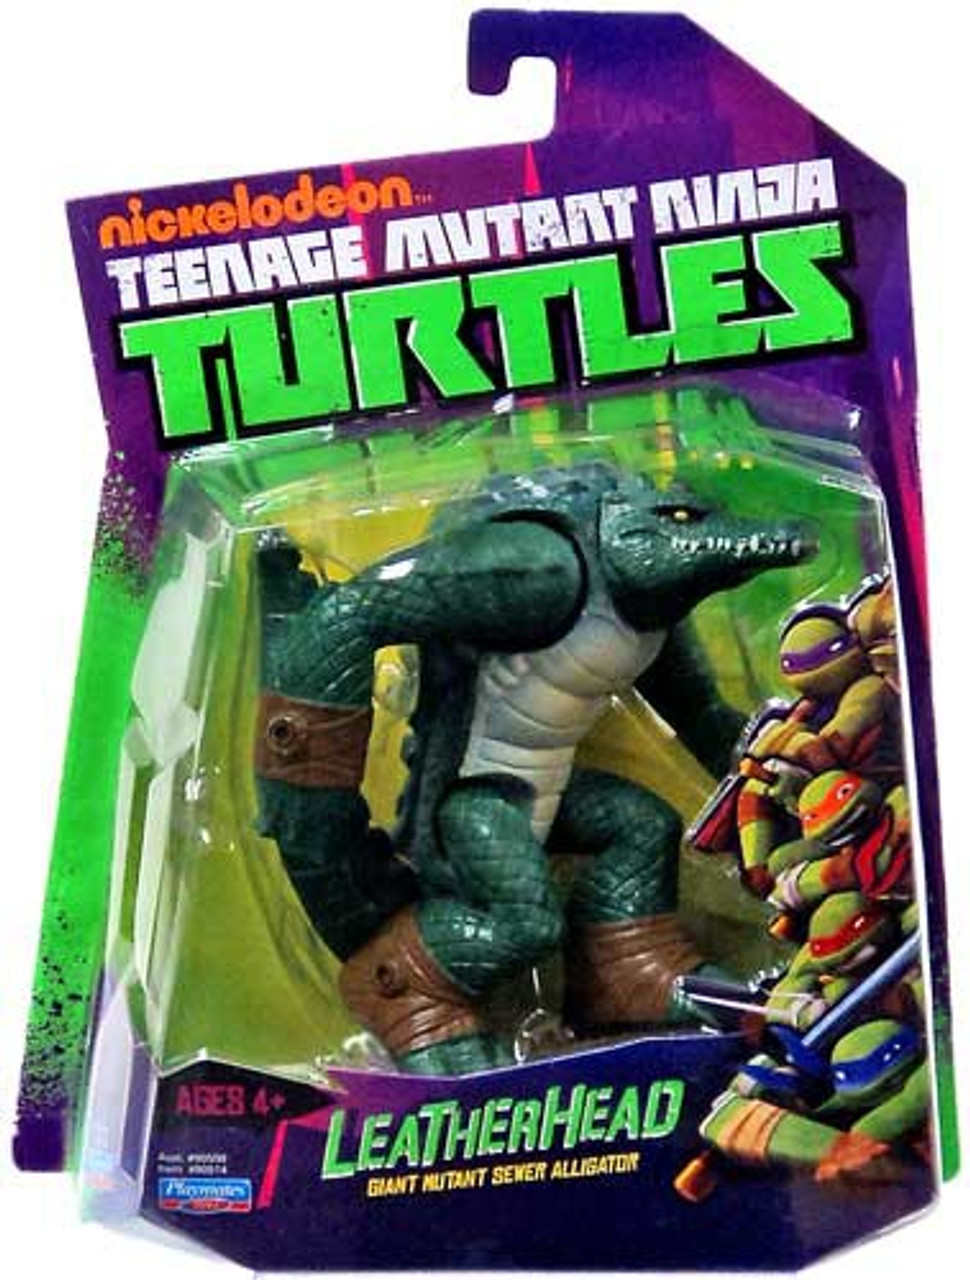 Teenage Mutant Ninja Turtles Nickelodeon Leatherhead Action Figure